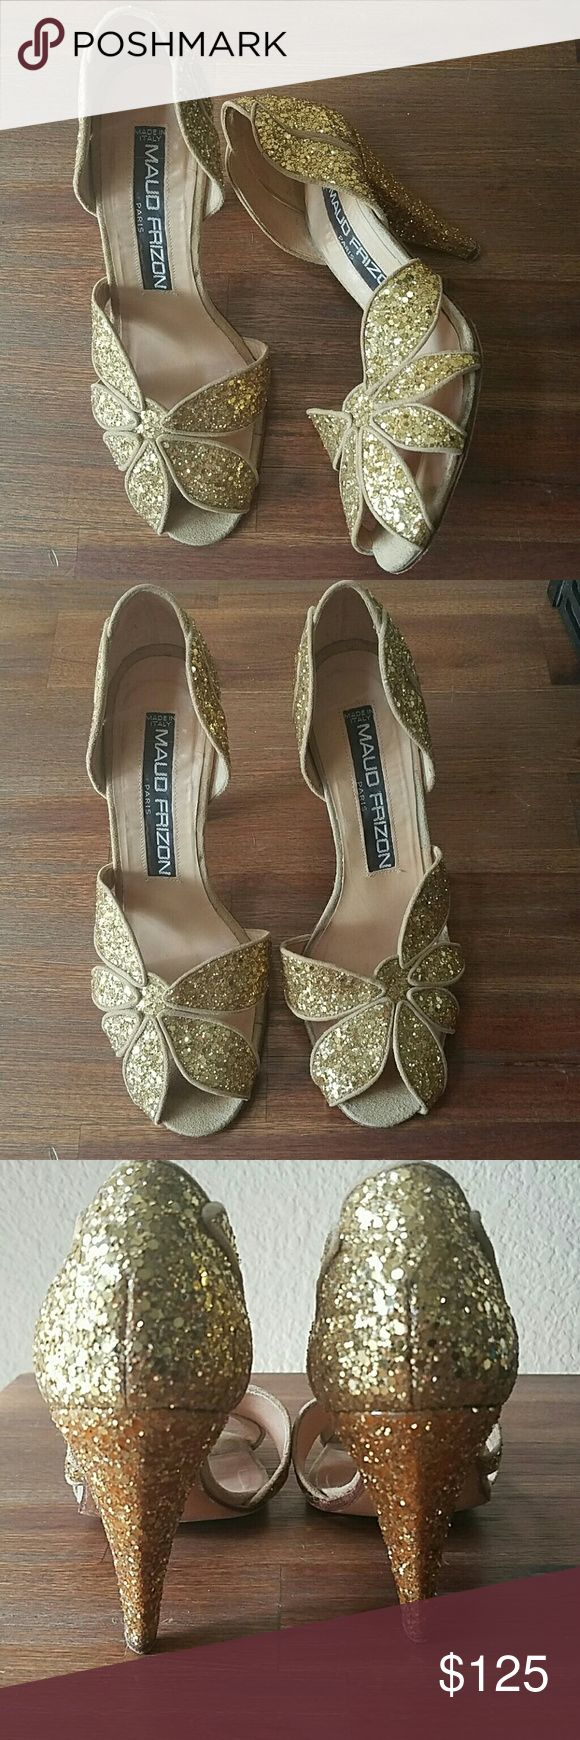 Maud Frizon Paris glam gold peeptoe heels Vintage chic, made in Italy. There's nothing on the internet quite like these! Pair these with boyfriend jeans and a white blousy tee! Please see all photos for wear, I'm happy to provide more detail/pics as well. Maud frizon Shoes Heels